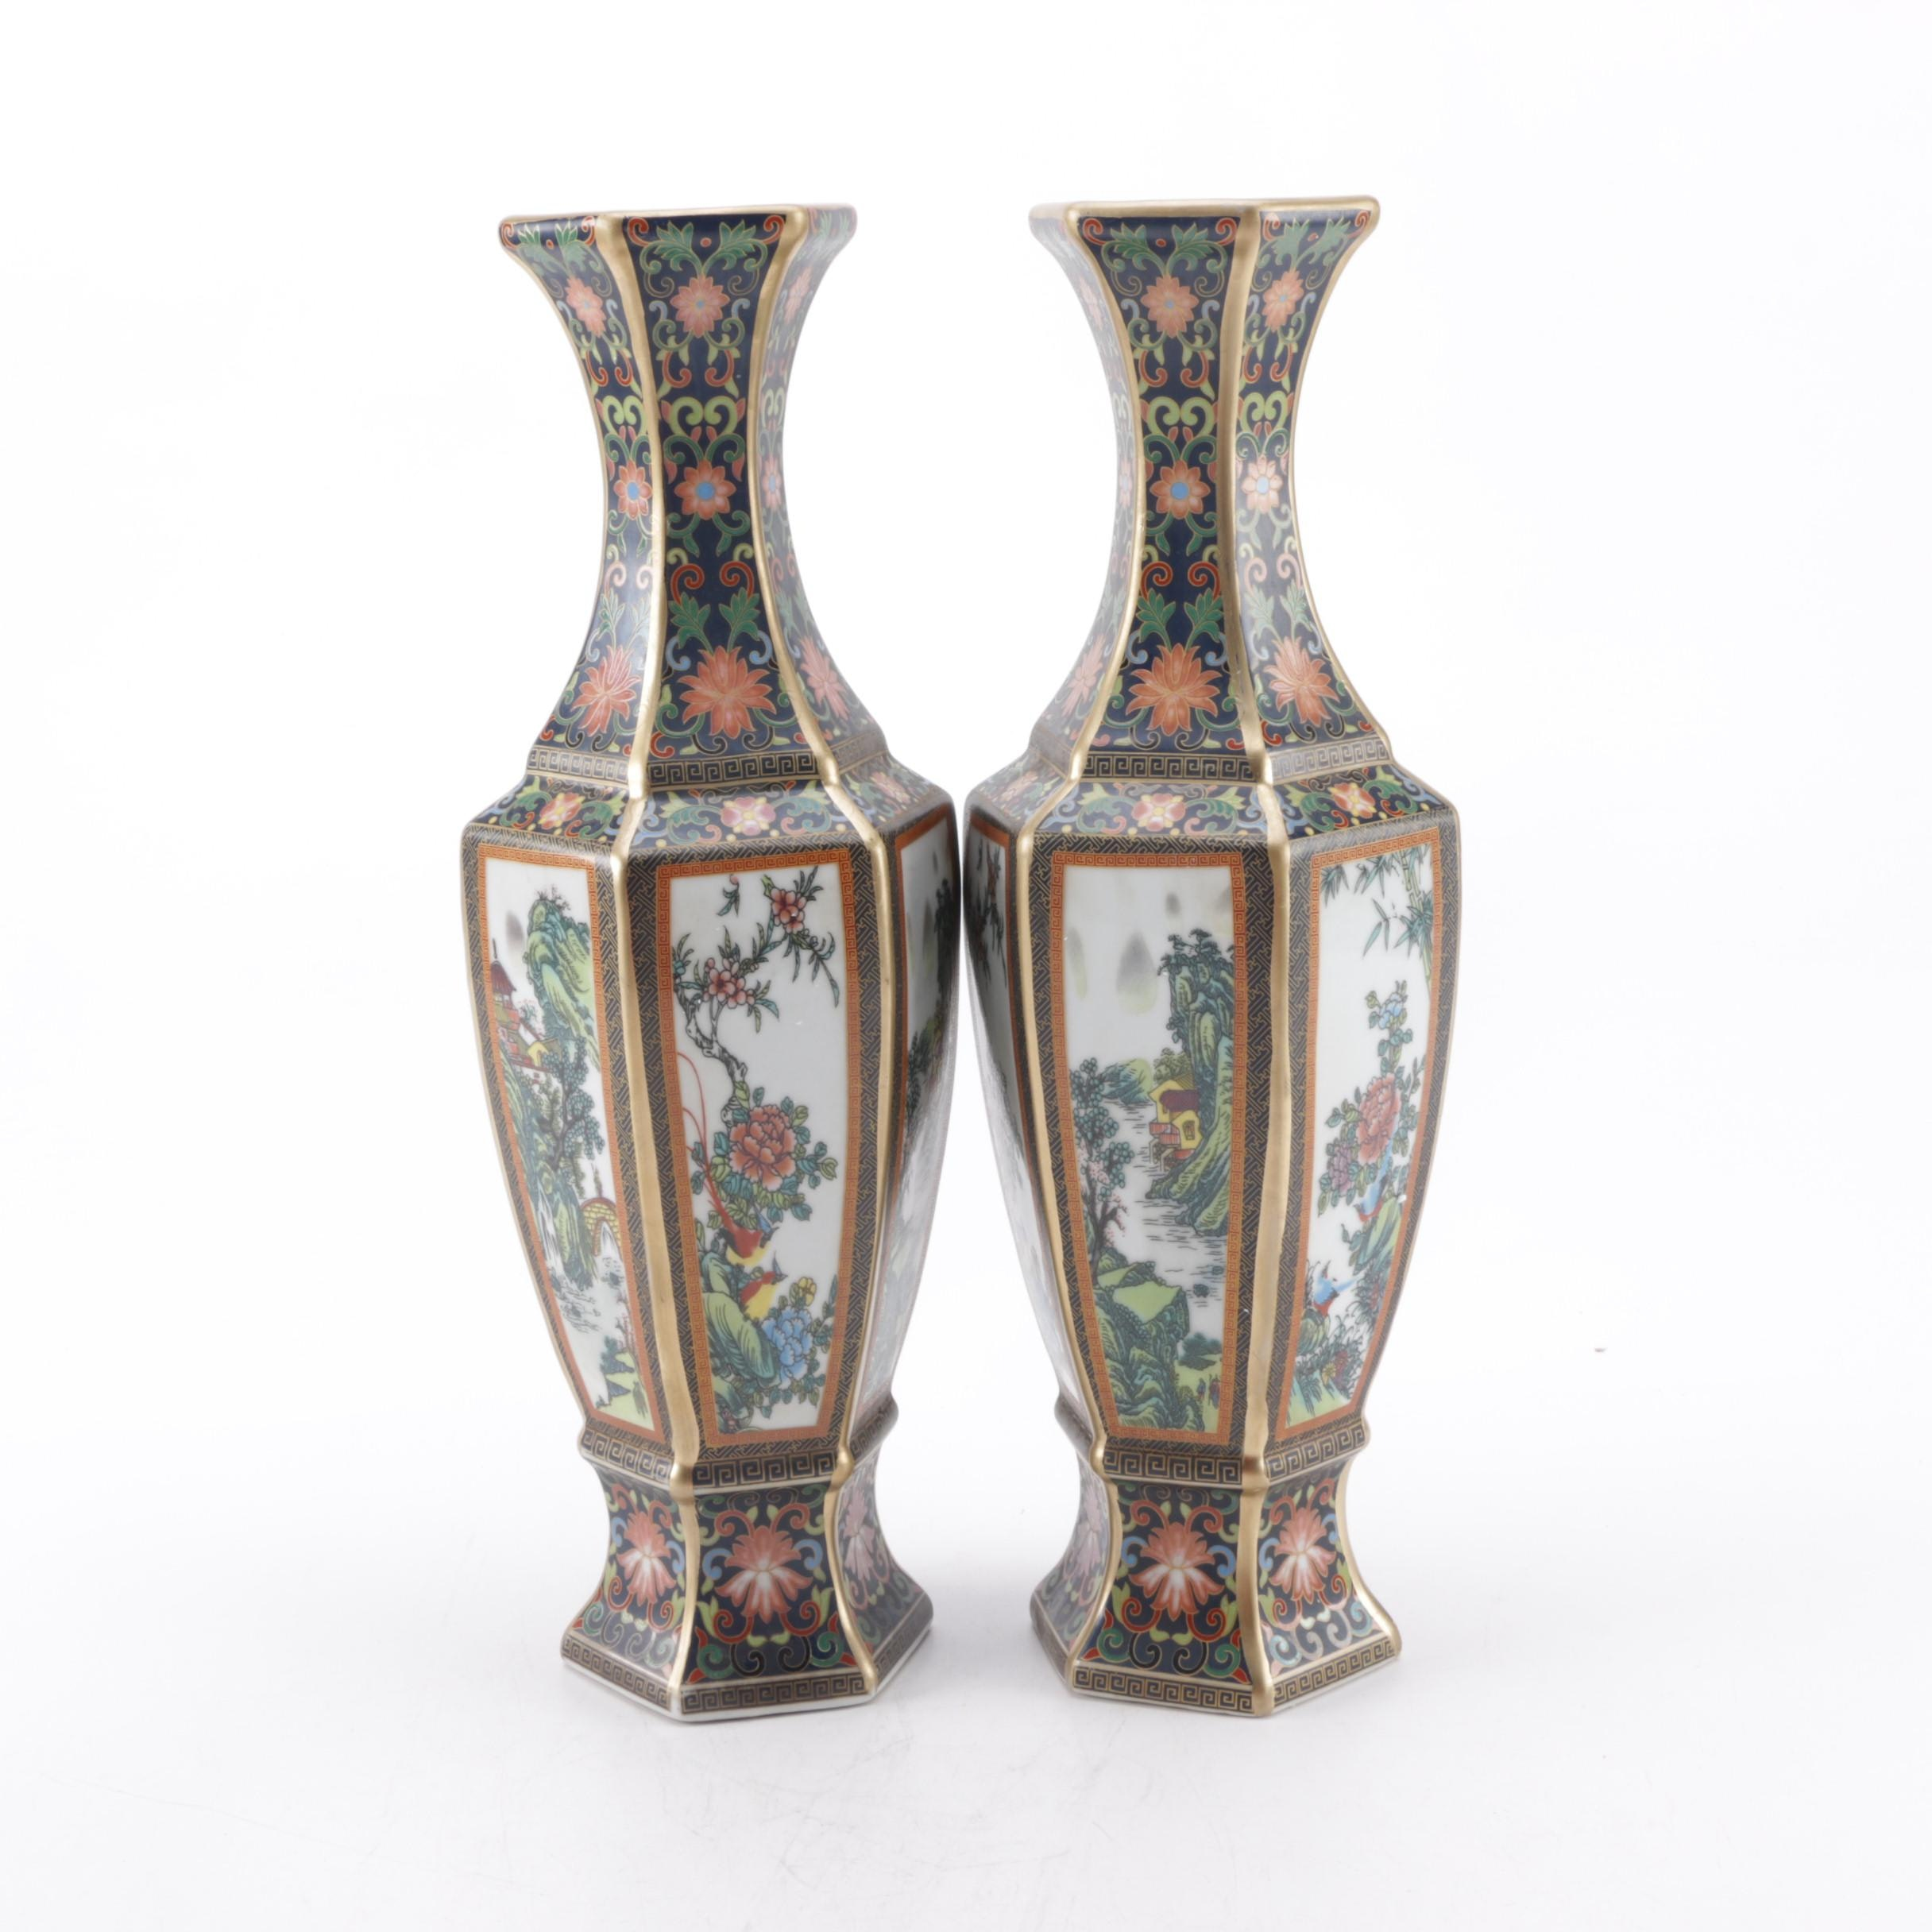 Pair of Chinese Hexagonal Faux Cloisonne Style Vases